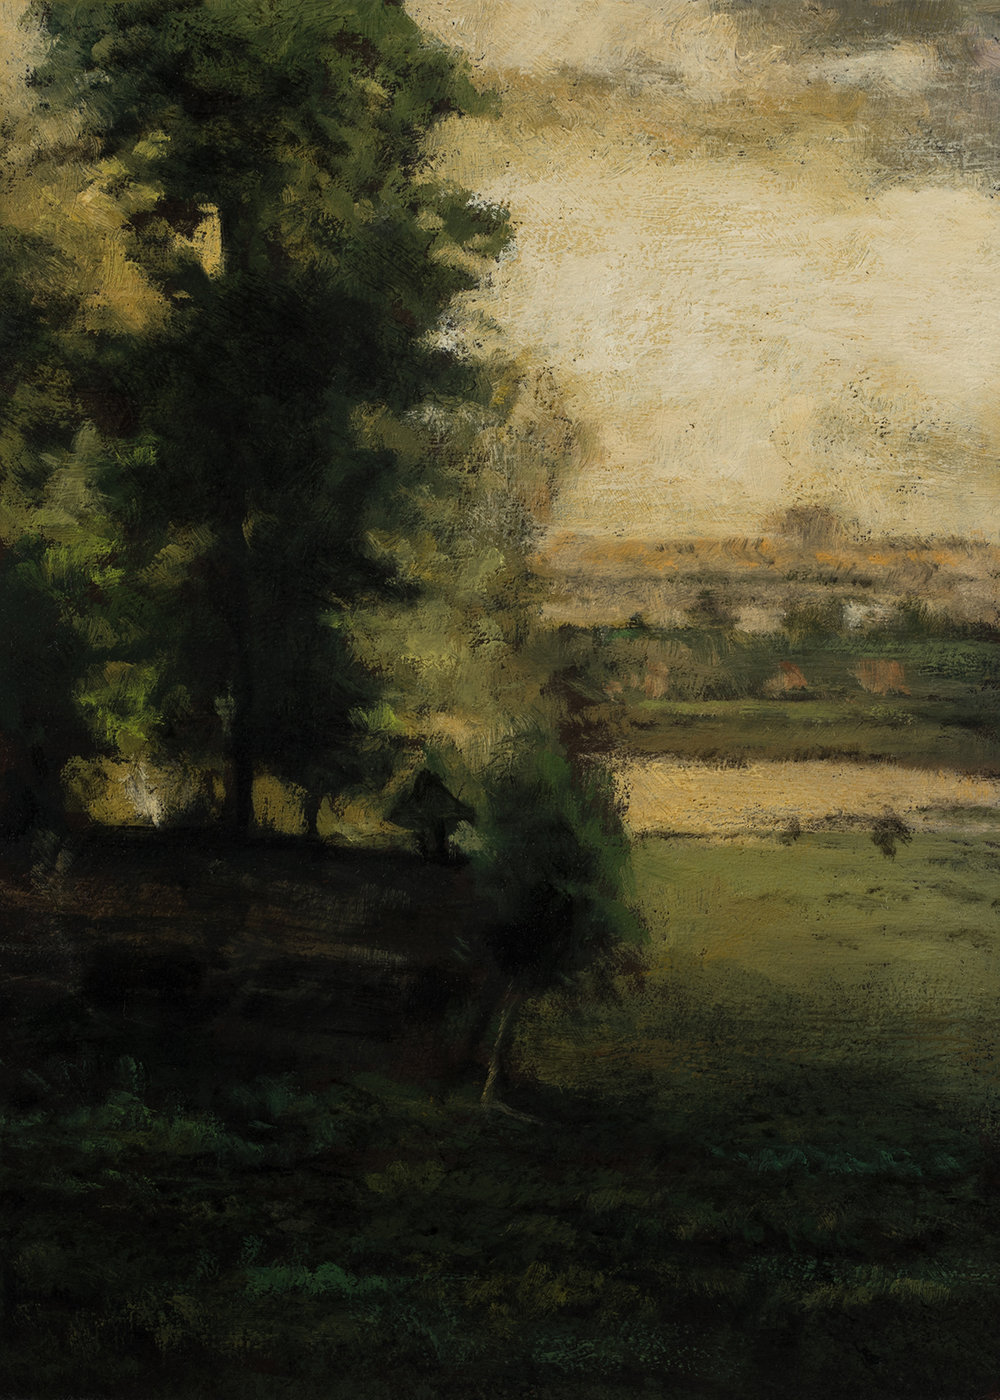 Study after:  George Inness Scene at Durham by M Francis McCarthy - 5x7 Oil on Wood Panel